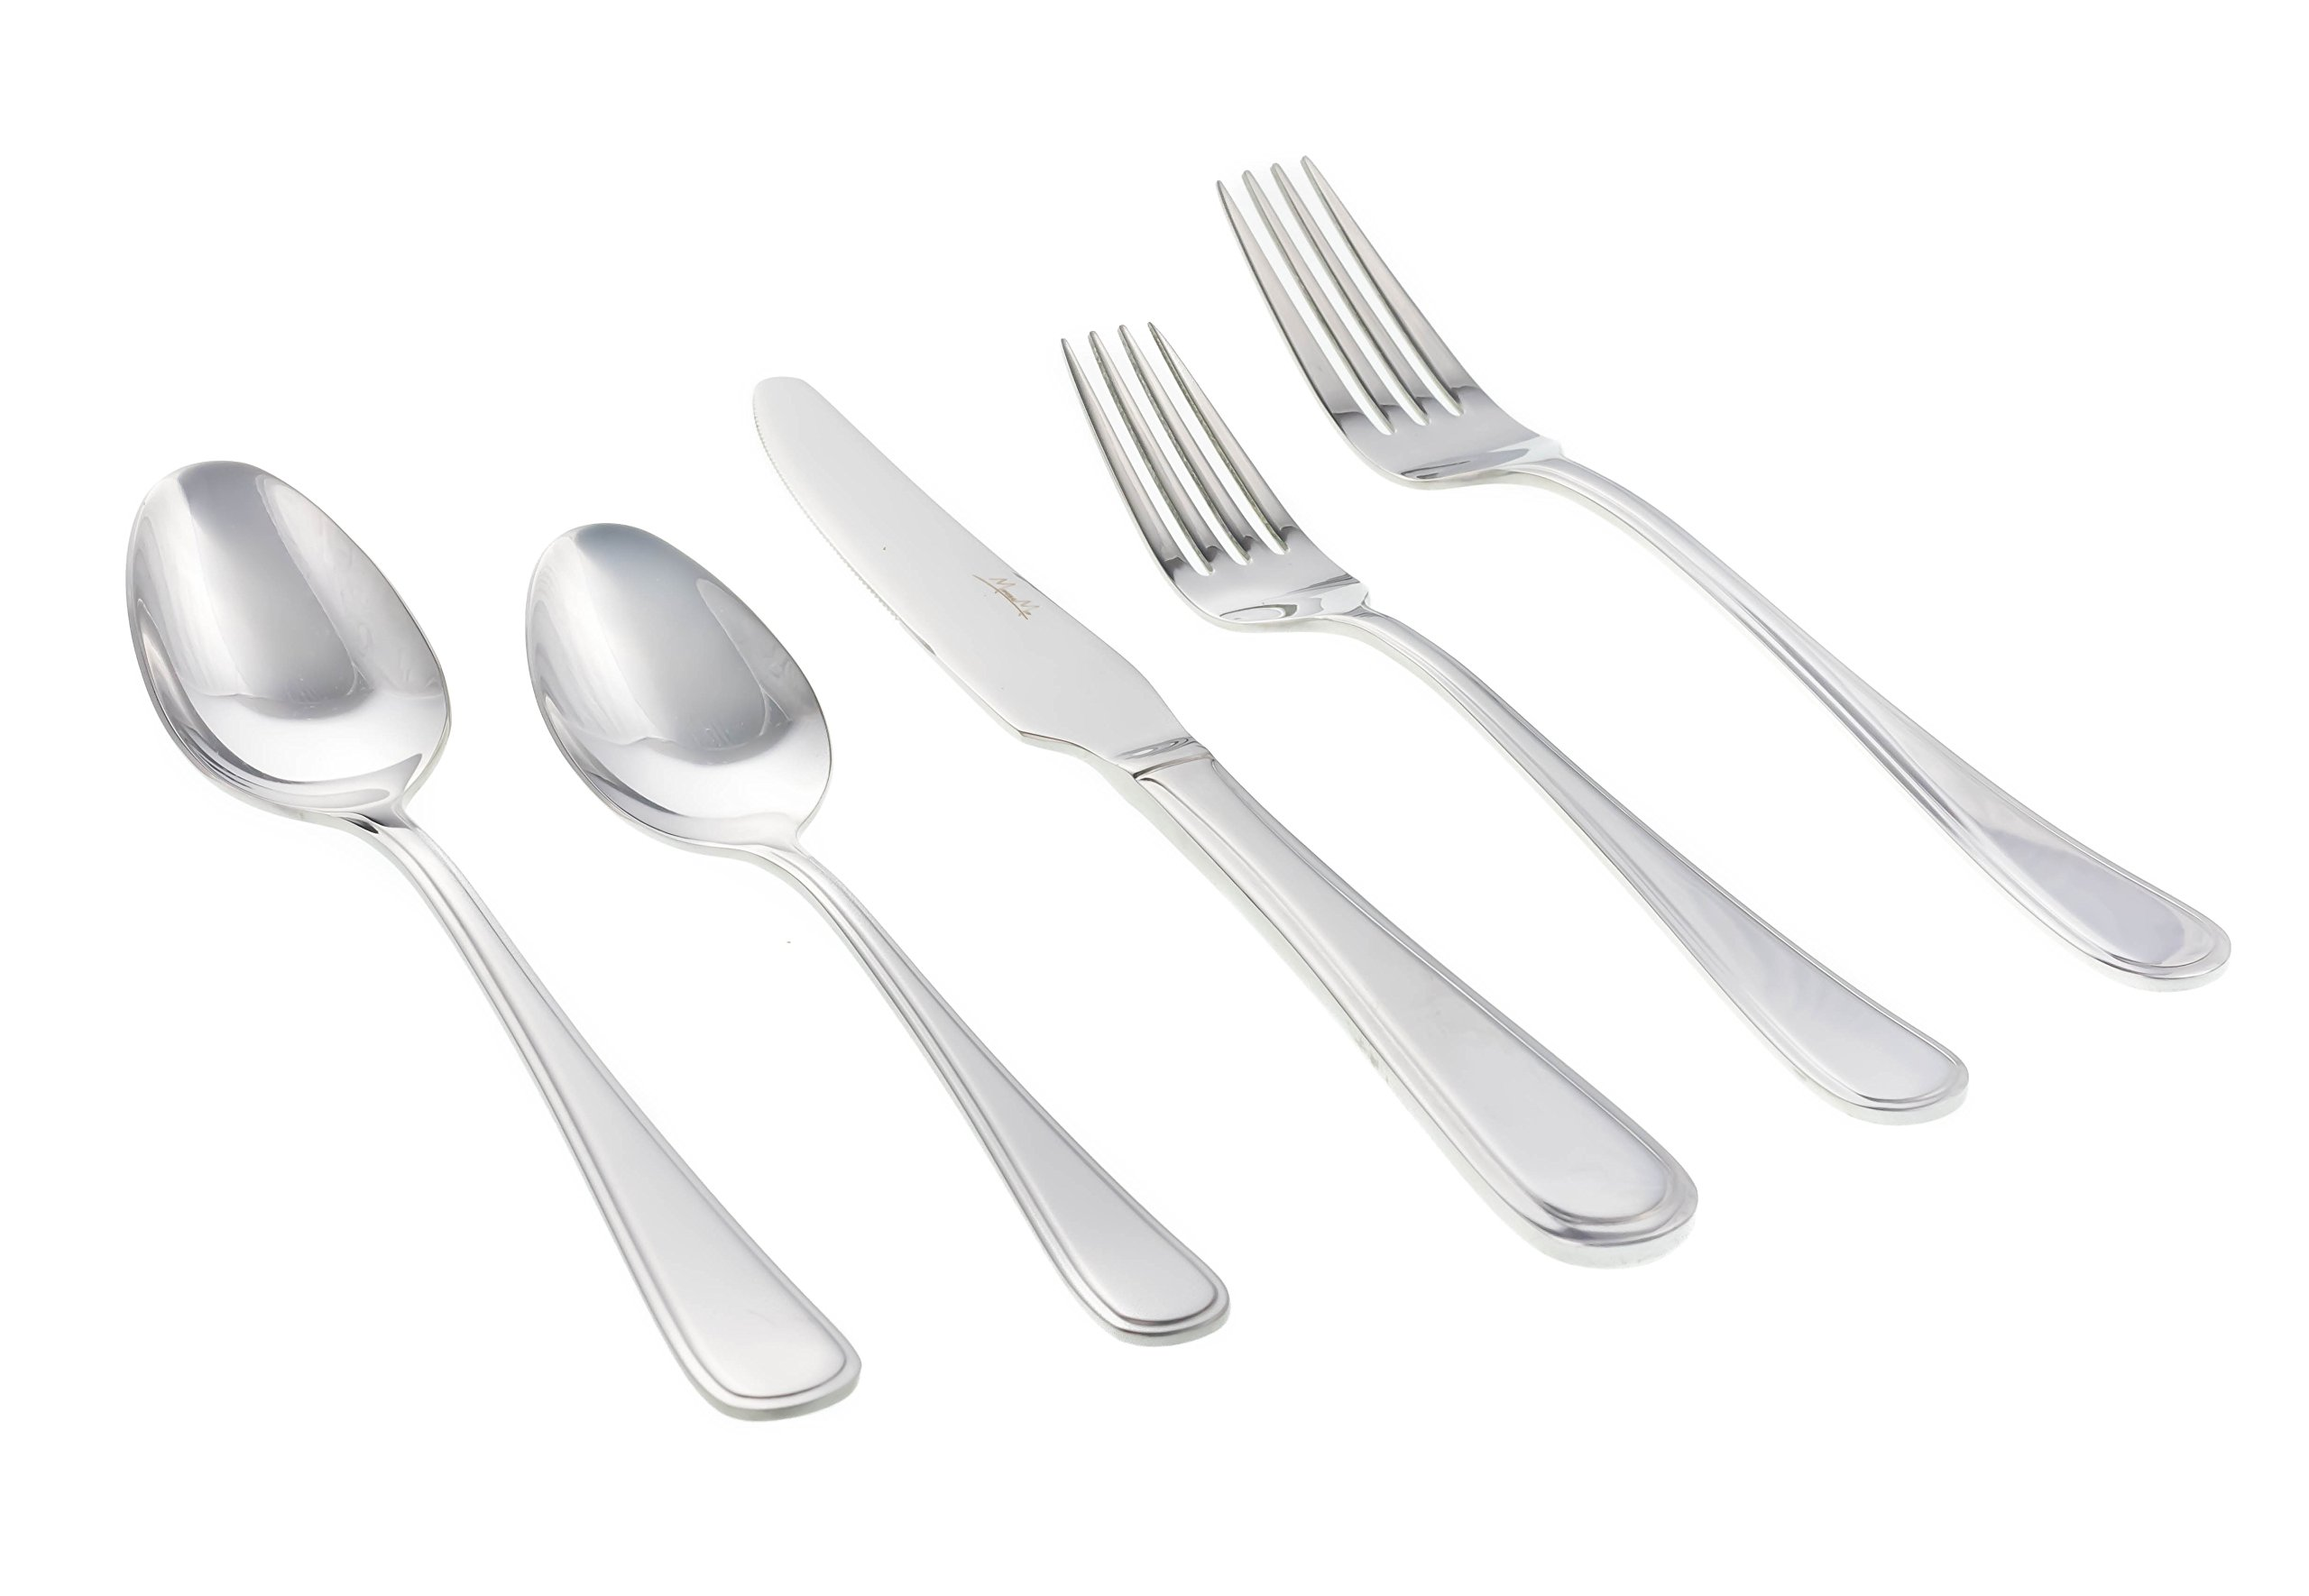 Stainless Steel Flatware Set by MosesMo- Modern & Perfect Weight Utensil Set- 20 or 40 Pieces Set- Everyday Luxurious Mirror Polished Silverware- Restaurant & Hotel Quality (20)